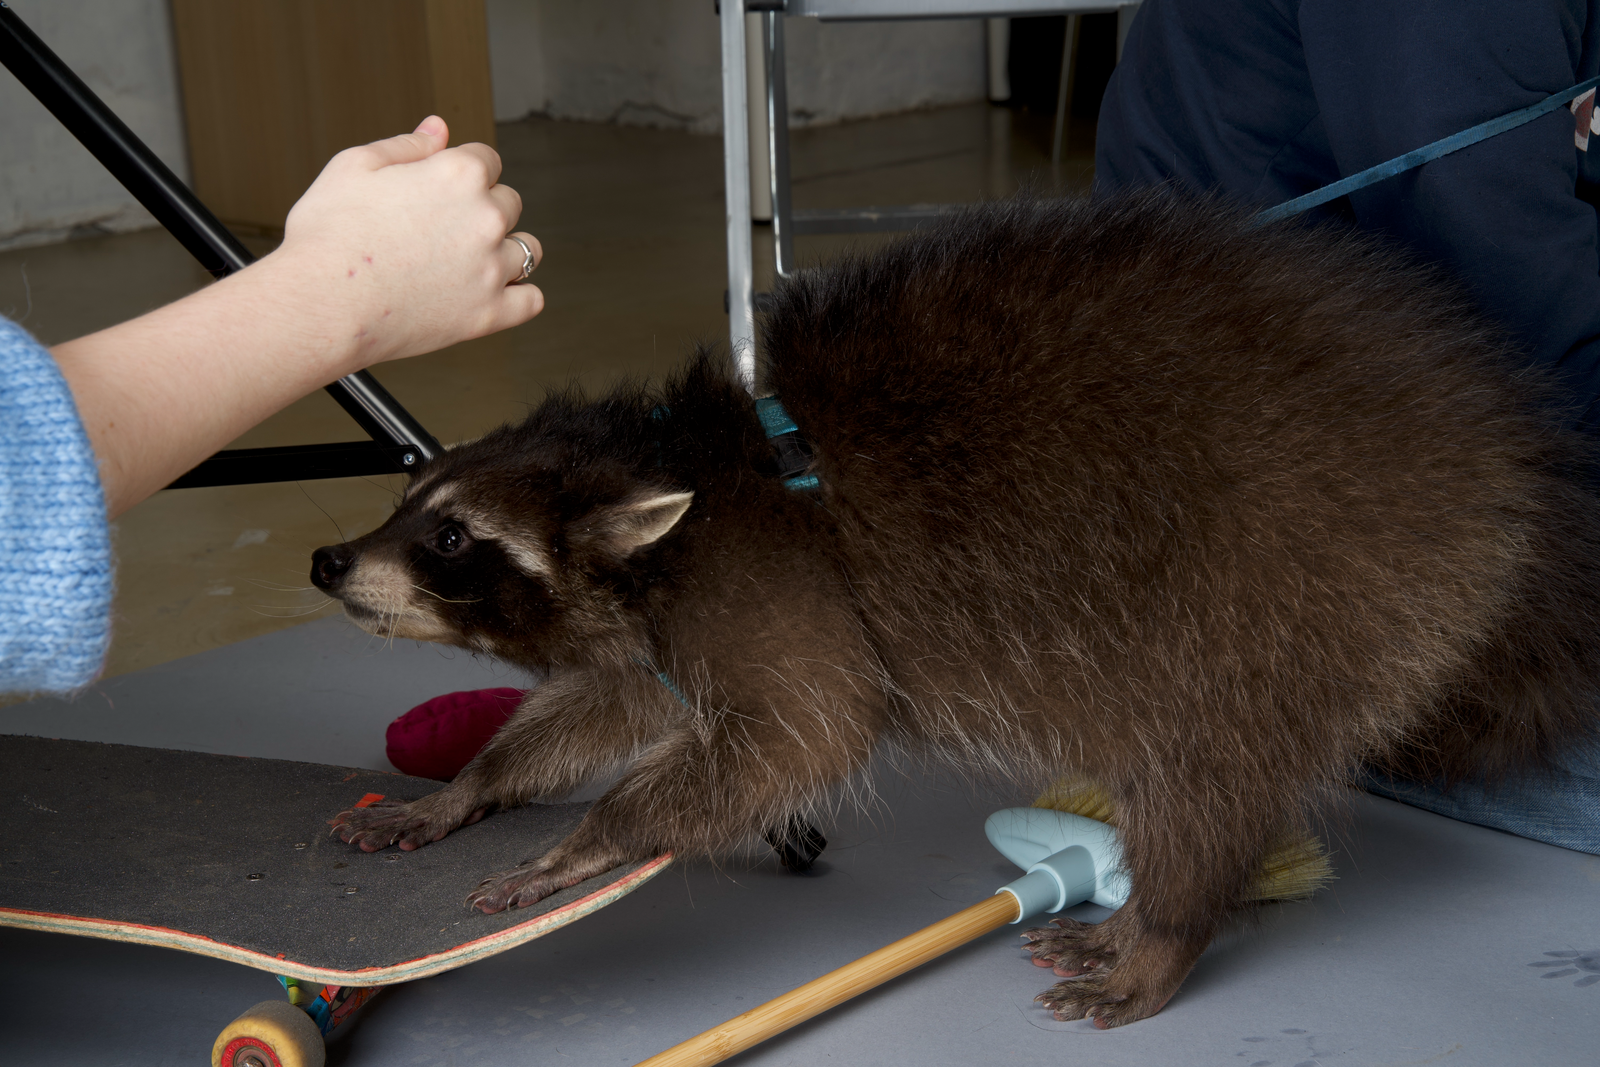 Working secrets of a stock photographer: posing hacks, cemetery adventures, and a rowdy raccoon: backstage shot with raccoon